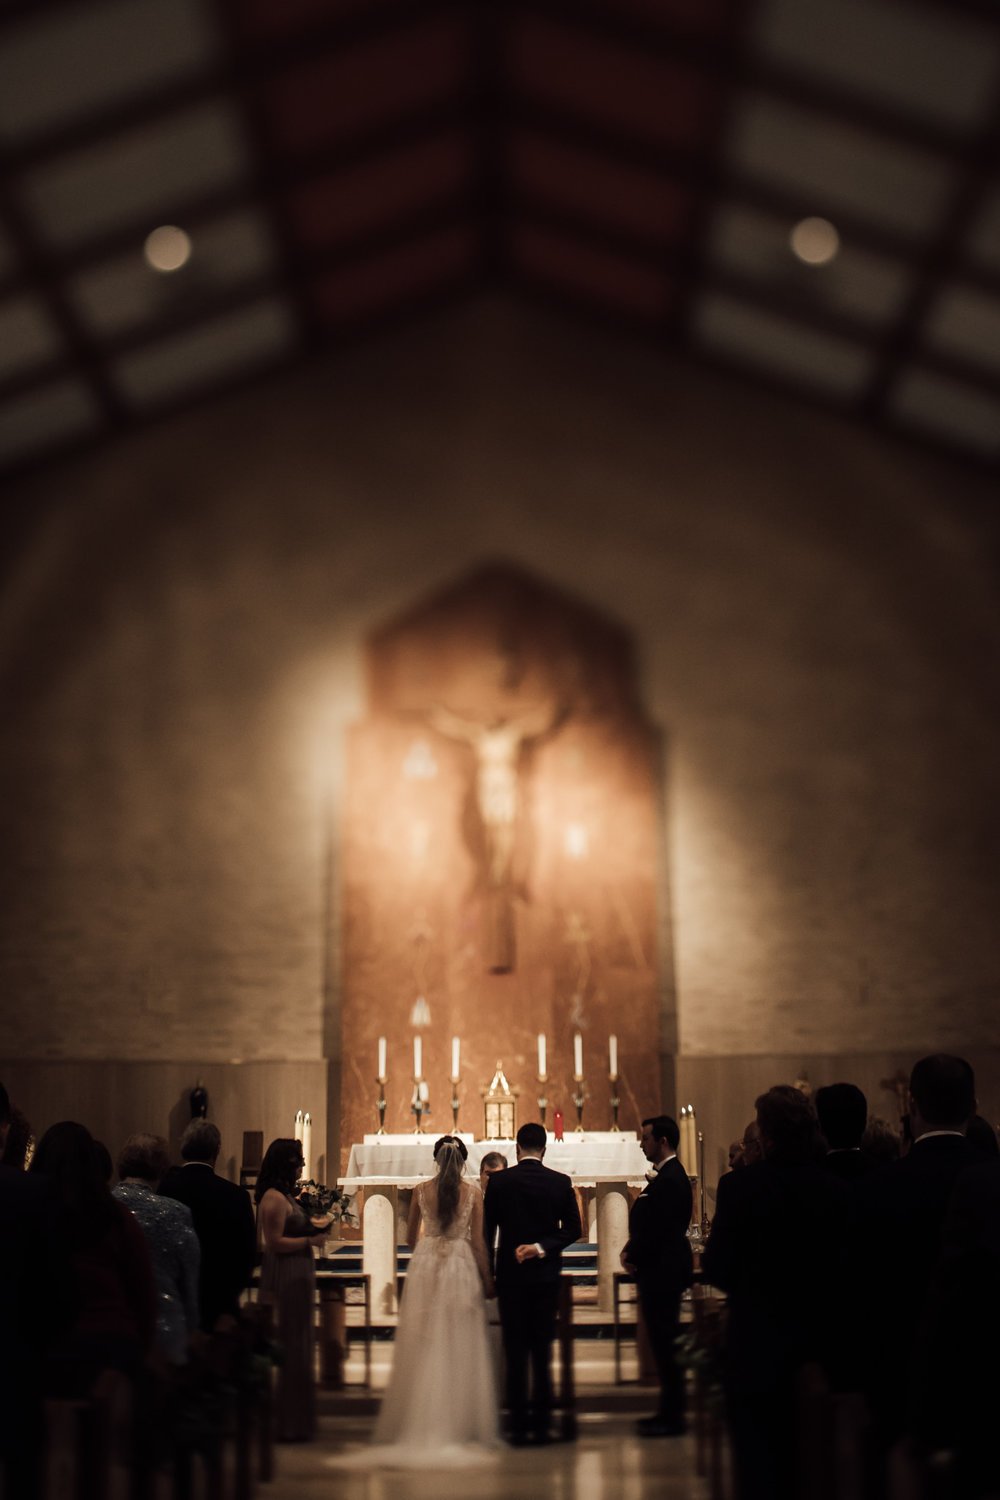 saint-annes-catholic-church-highland-wedding-avella-wedding-cassie-cook-photography